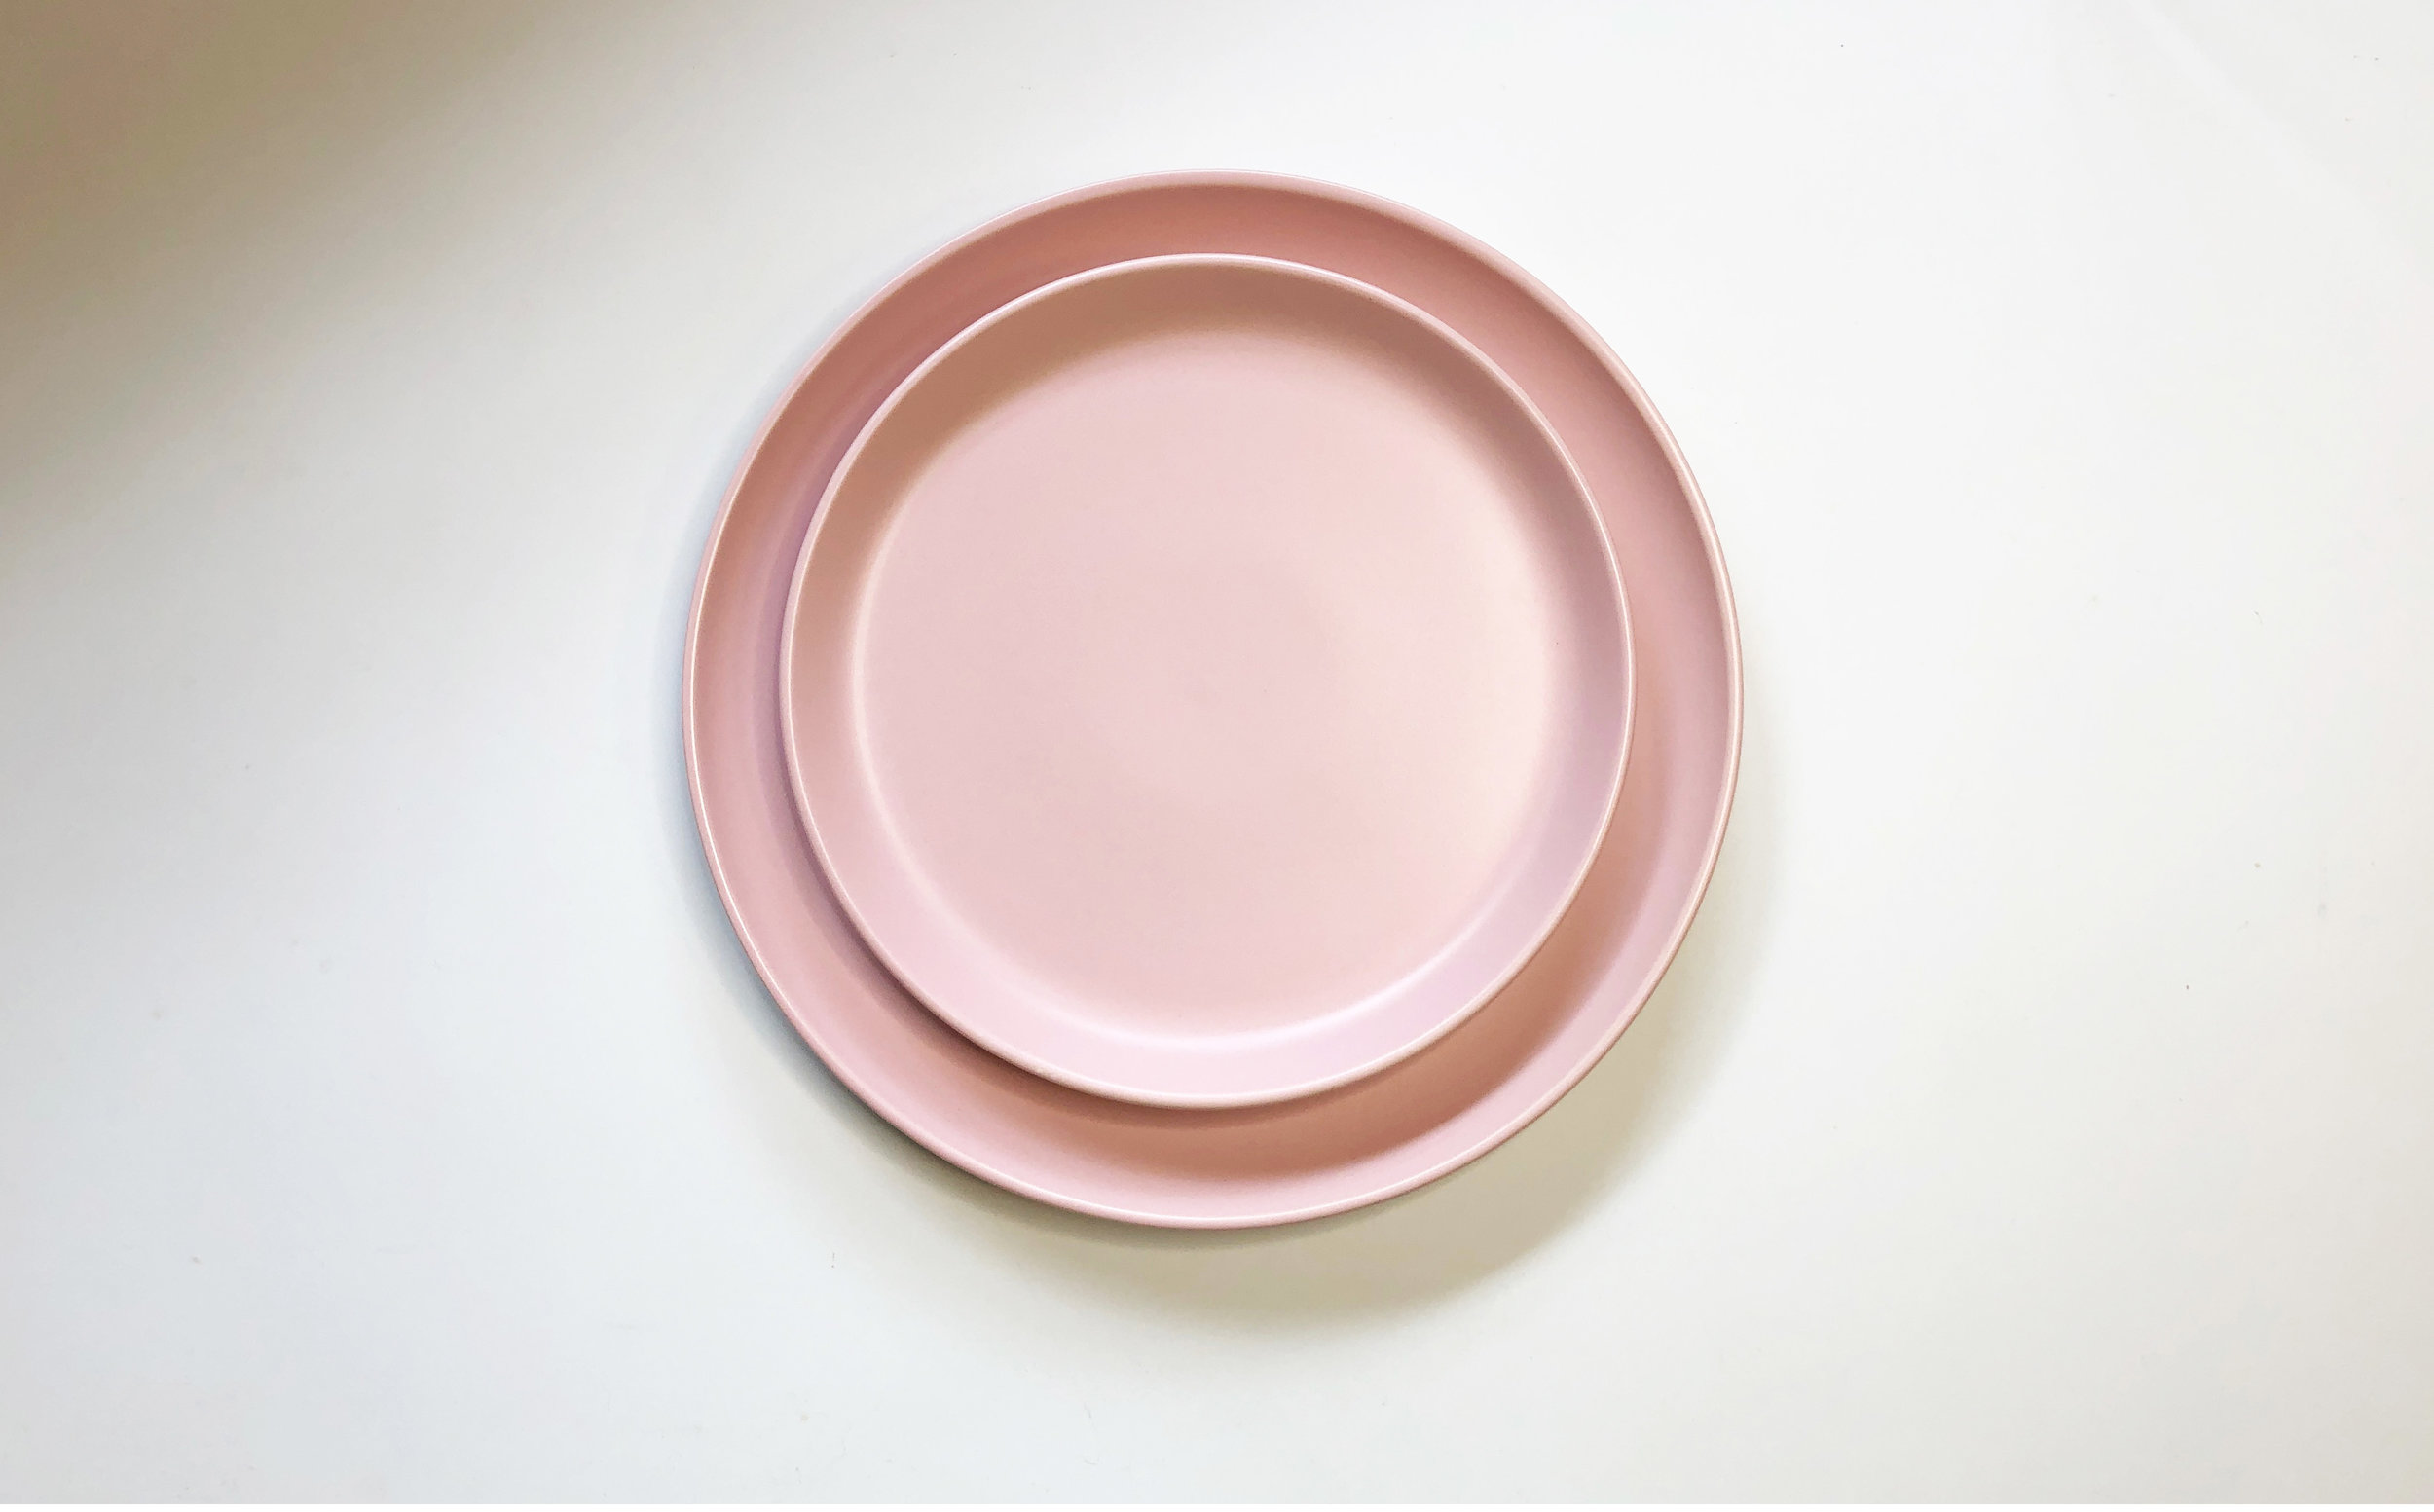 PINK STONEWARE SALAD AND DINNER PLATE